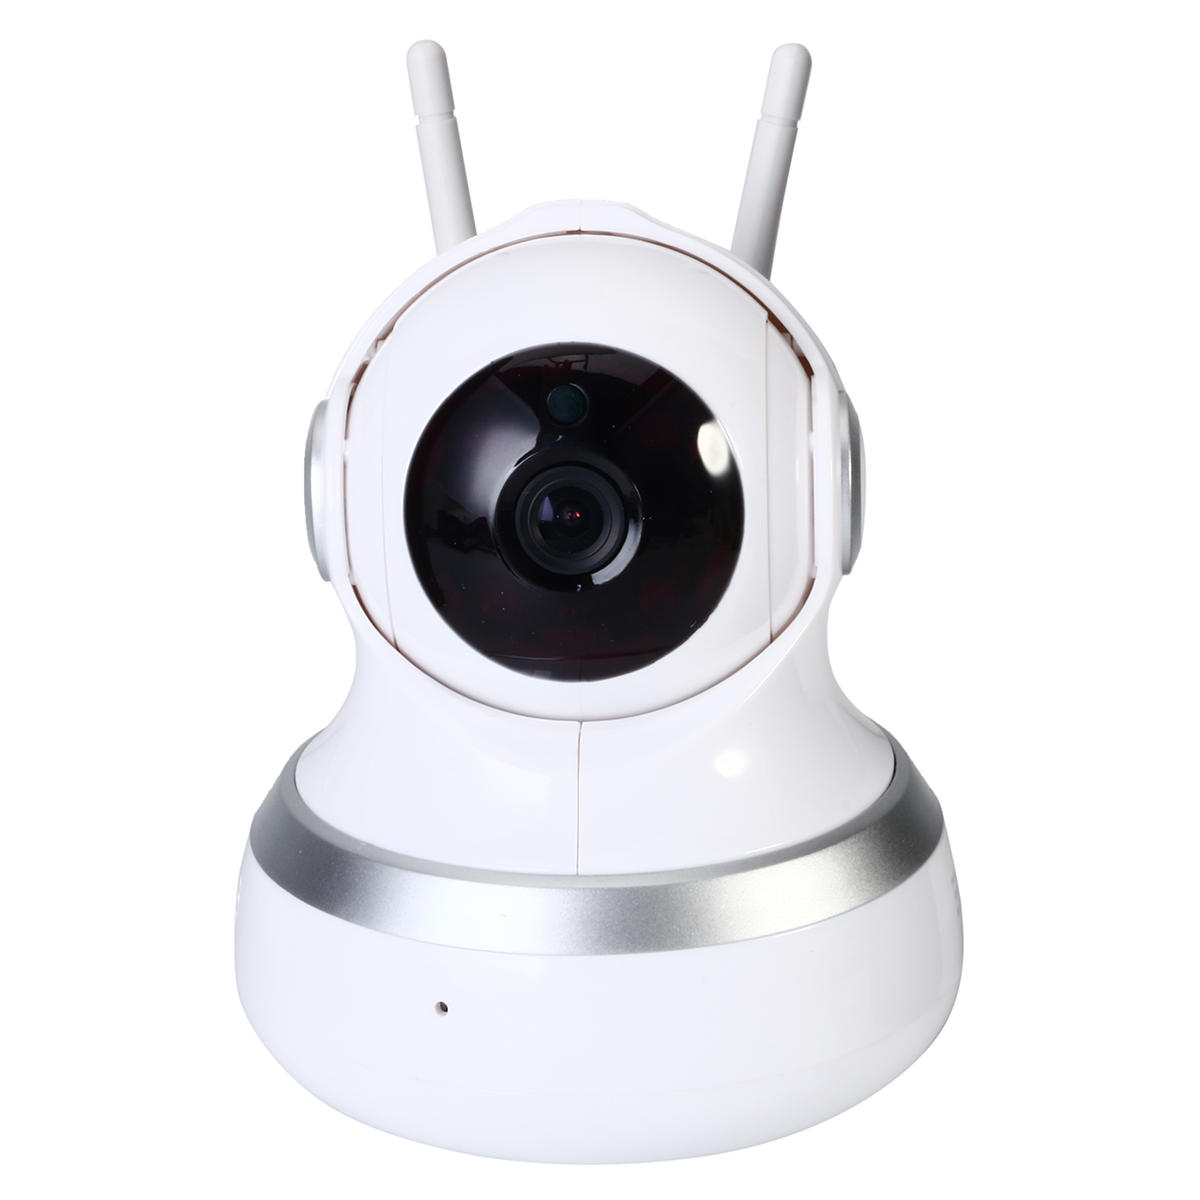 Wireless WIFI HD 1080P IP Camera Home Security Smart Audio CCTV Camera  Pan Tilt Night Vision COD 976d2cdc0